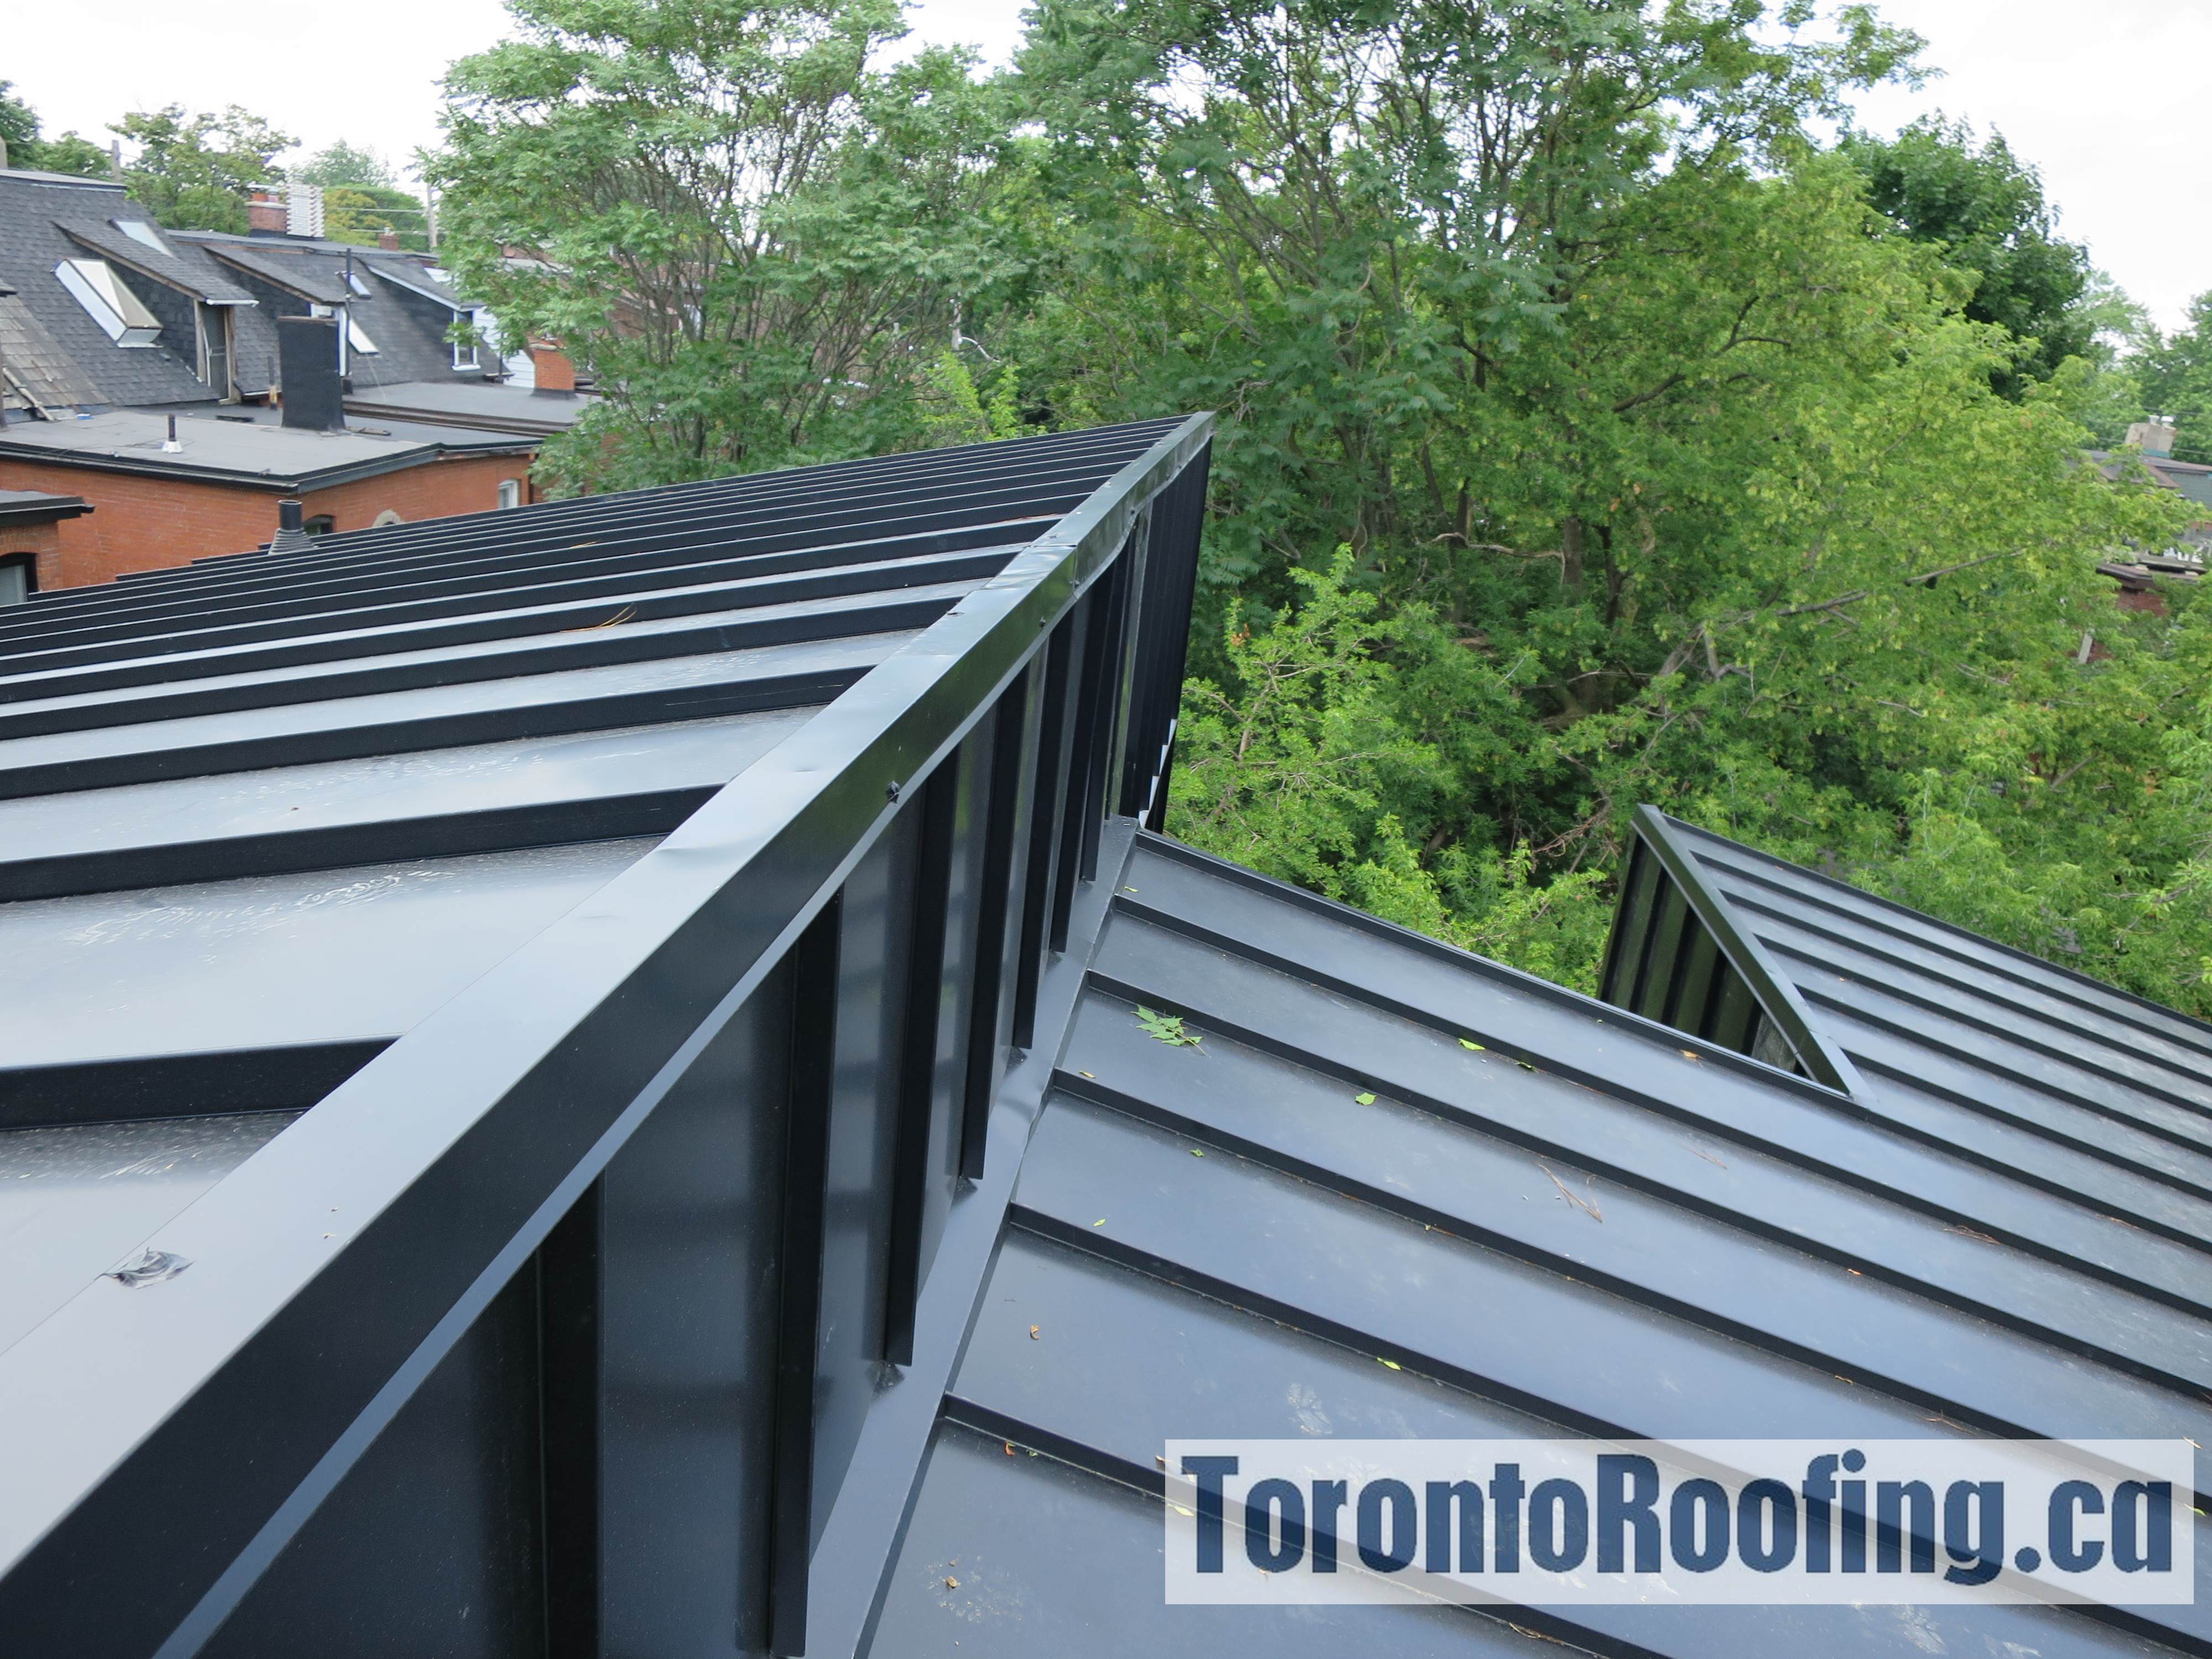 toronto-roofing-standing-seam-metal-roof-roofing-toronto-metal-roofing-roofing-contractor-10